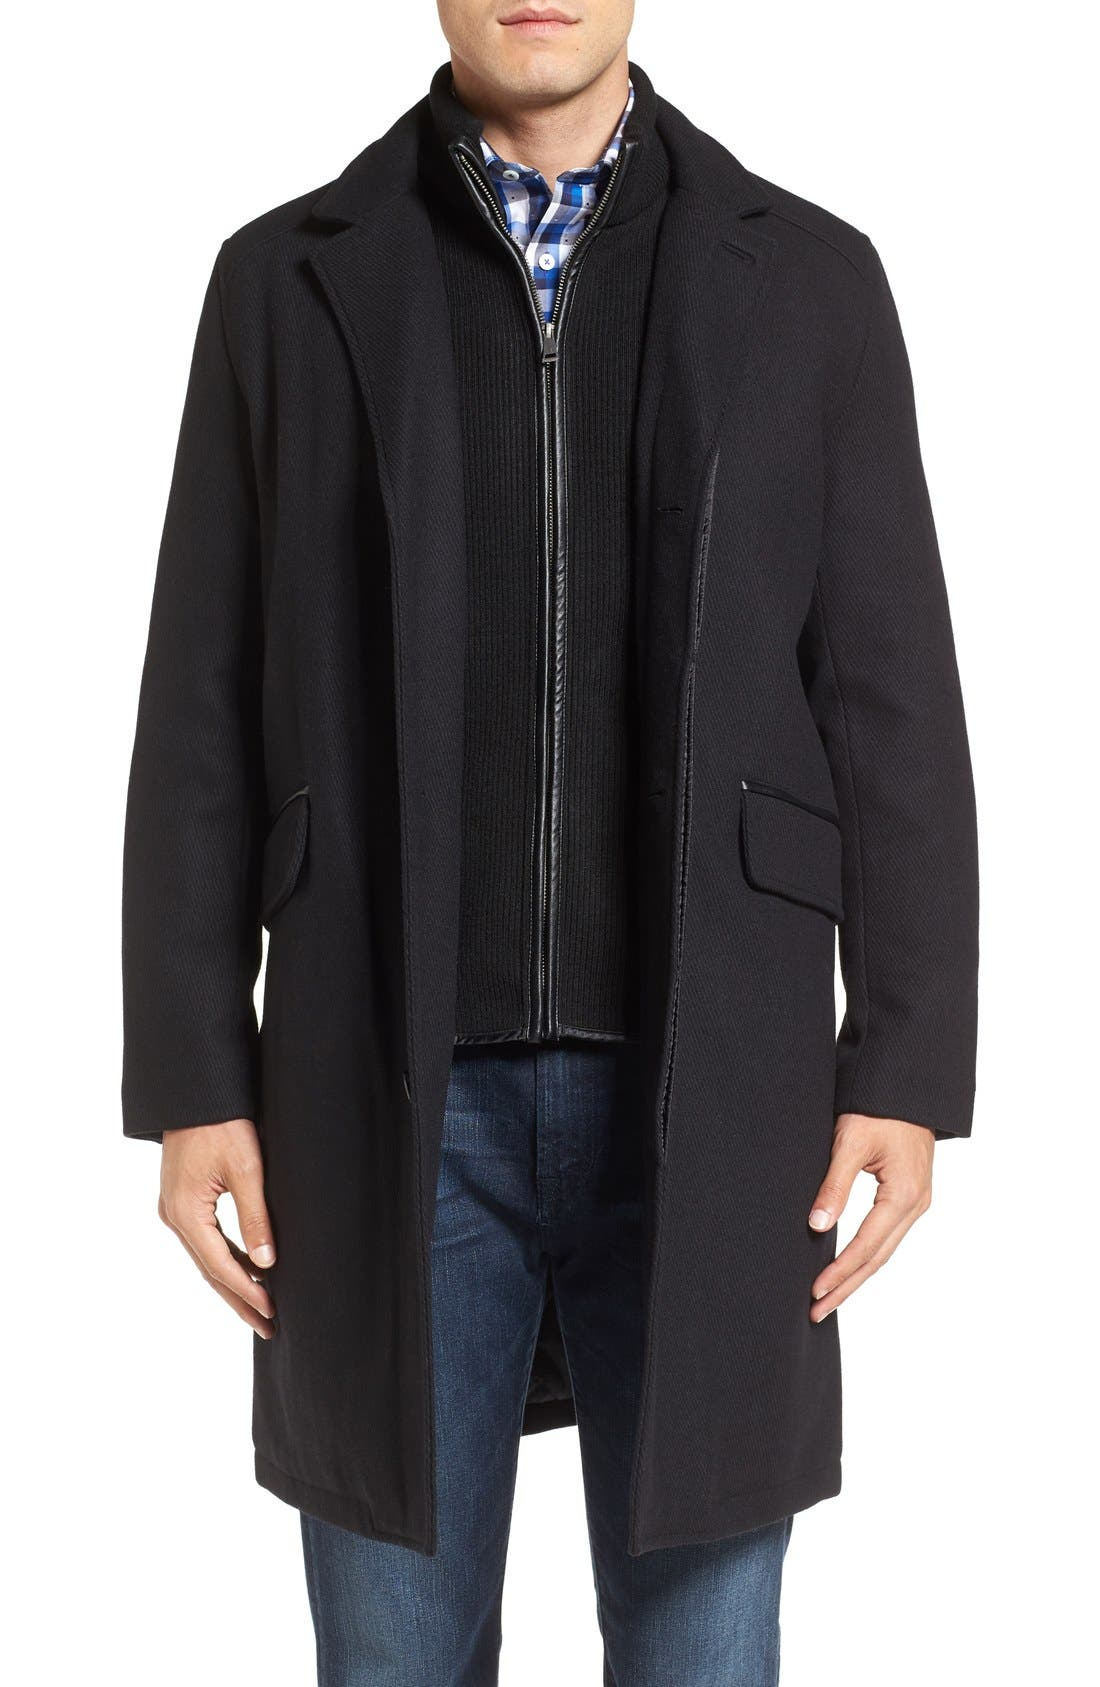 Wool Blend Overcoat with Knit Bib Inset,                         Main,                         color, BLACK